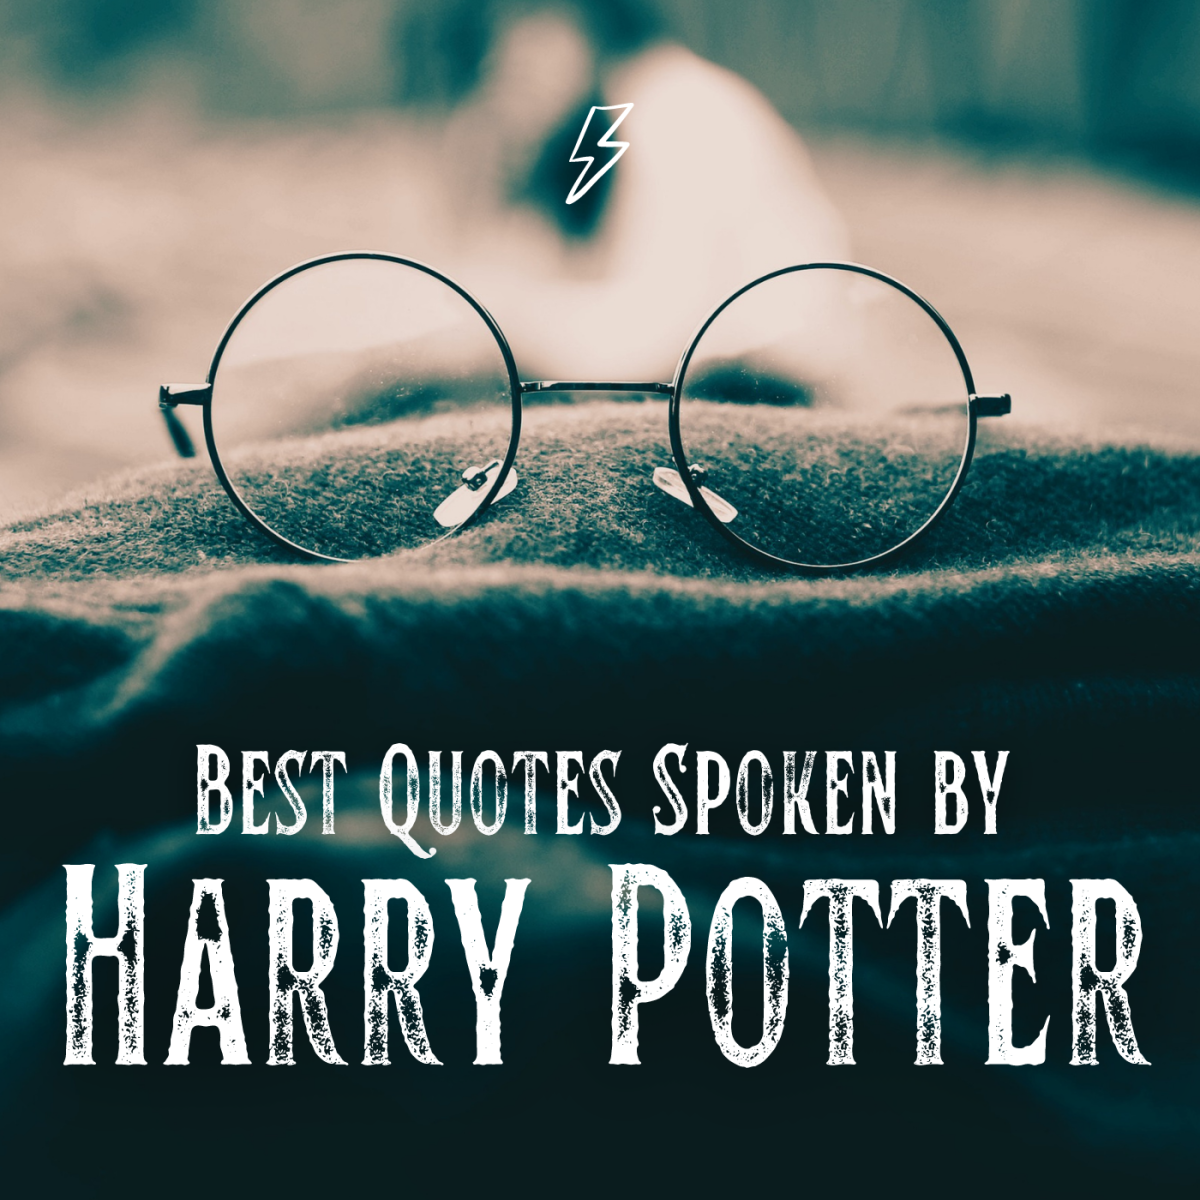 Famous Harry Potter Quotes (Said by Harry Himself)